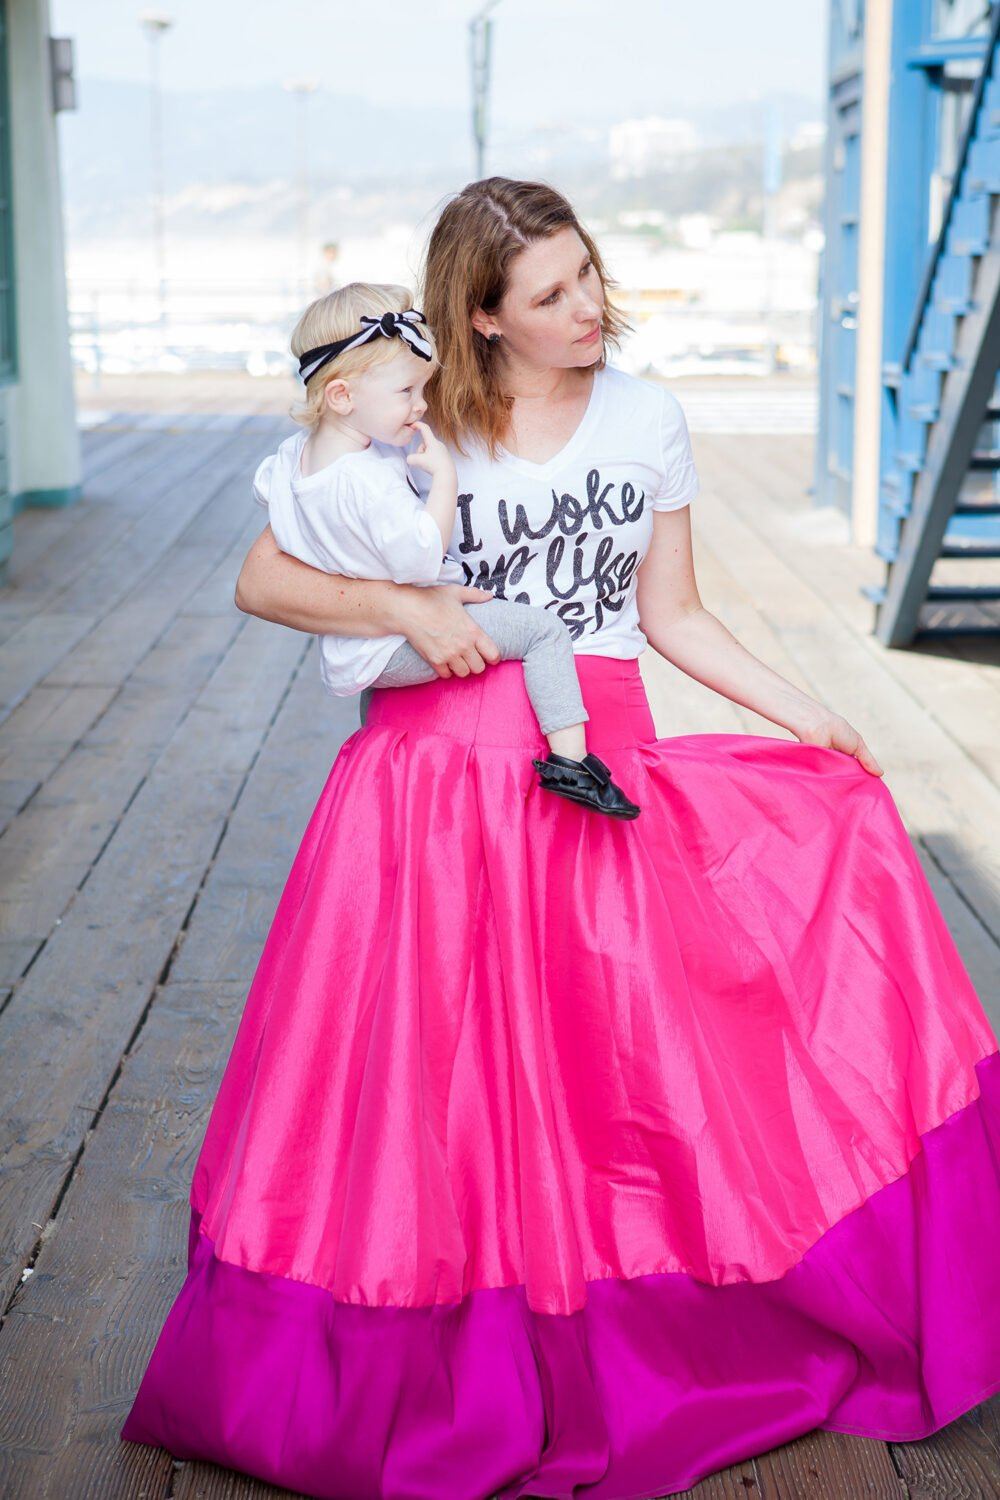 How cute is mommy and me outfit? The adorable ball skirt? And those graphic tees, love it!